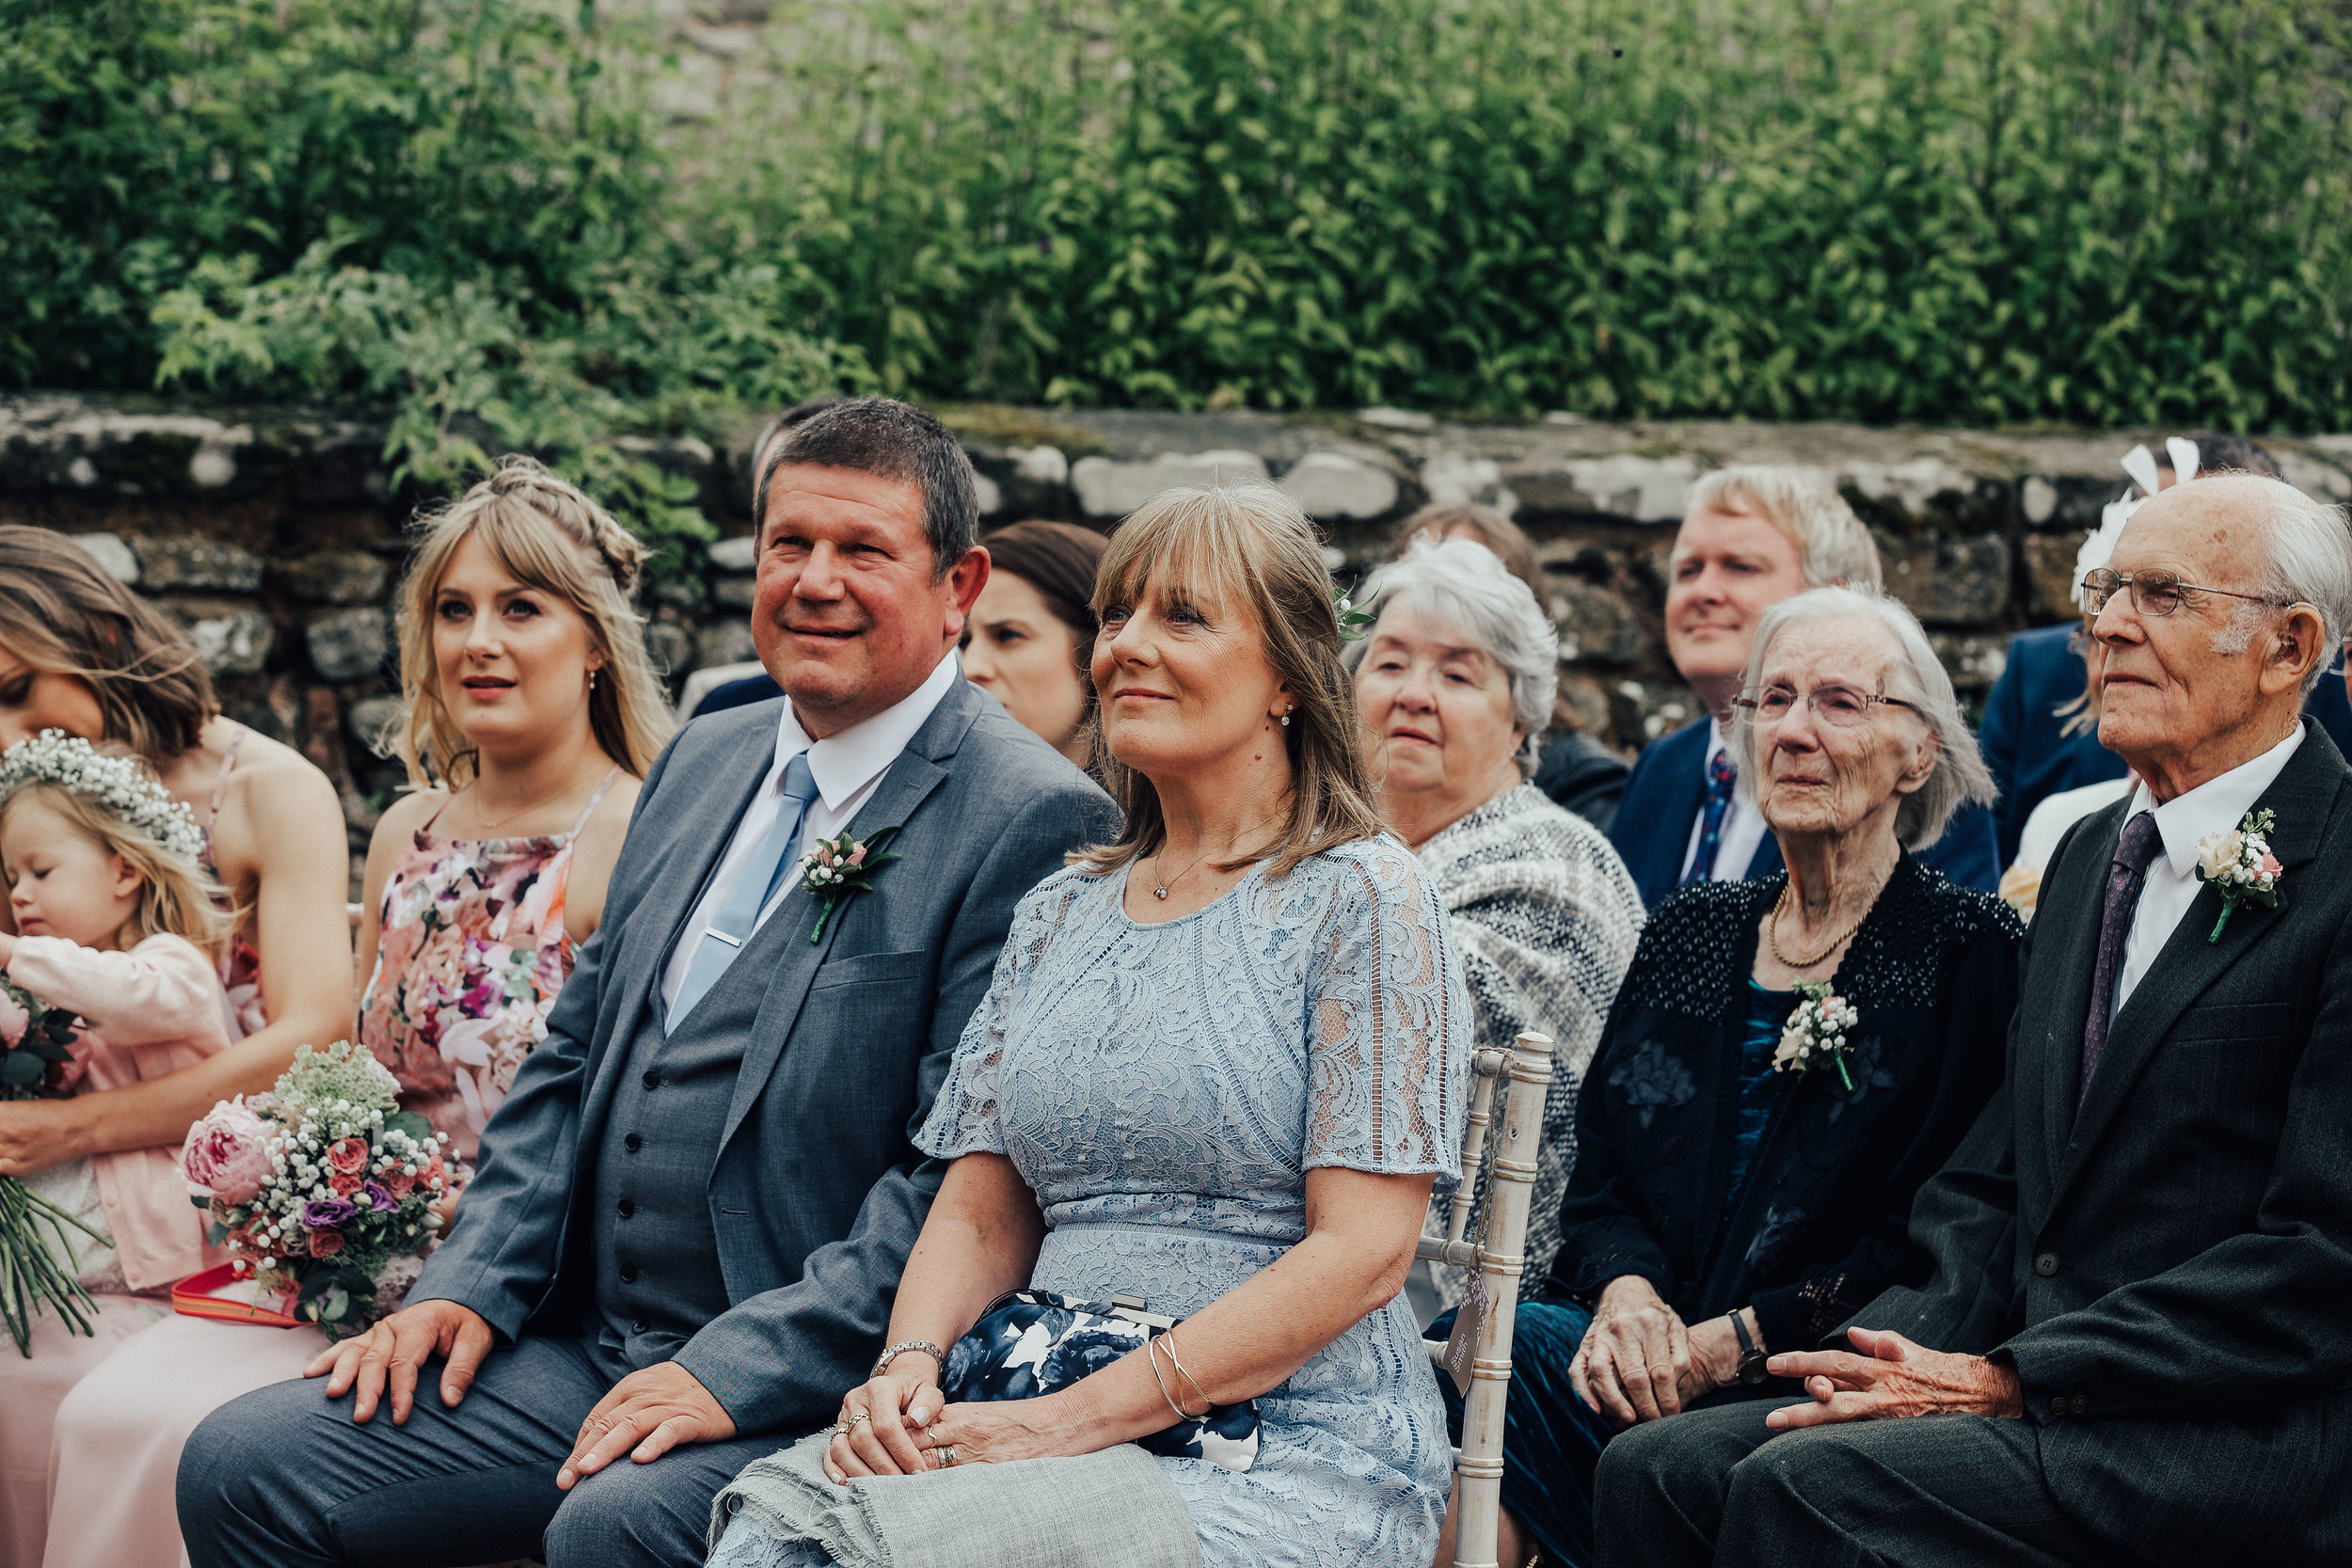 PJ_PHILLIPS_PHOTOGRAPHY_EDINBURGH_WEDDERBURN_BARNS_WEDDING_EDINBURGH_WEDDING_PHOTOGRAPHER_65.jpg